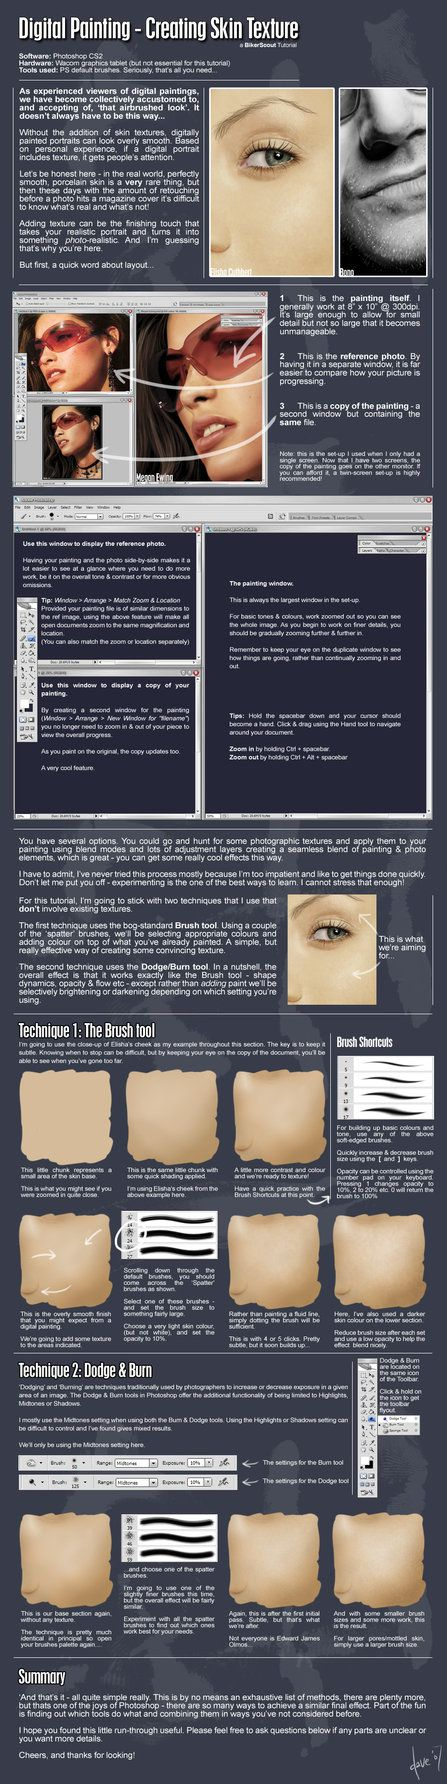 ::Painting Skin Textures:: by =BikerScout on deviantART